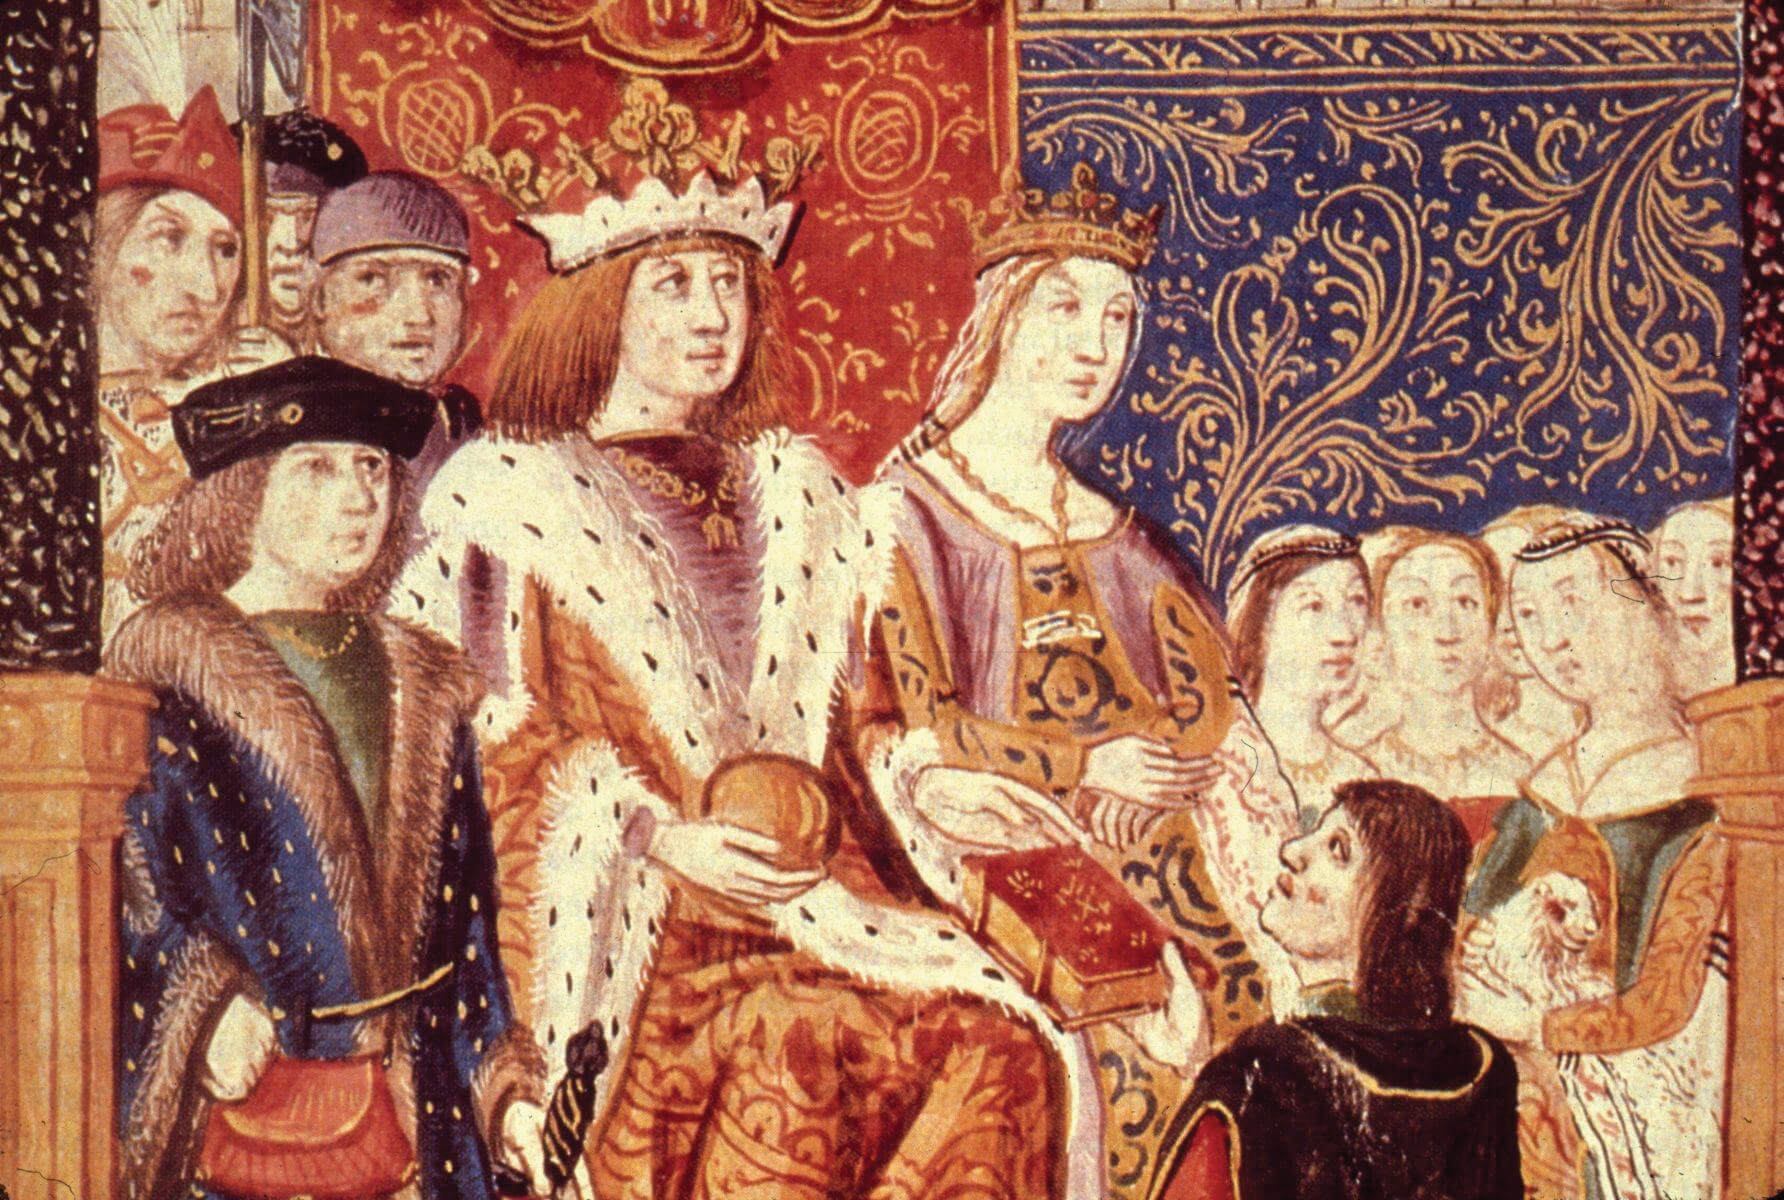 Though vilified in Jewish history, Ferdinand and Isabella were celebrated in Spain for uniting the country and transforming it into a world power.